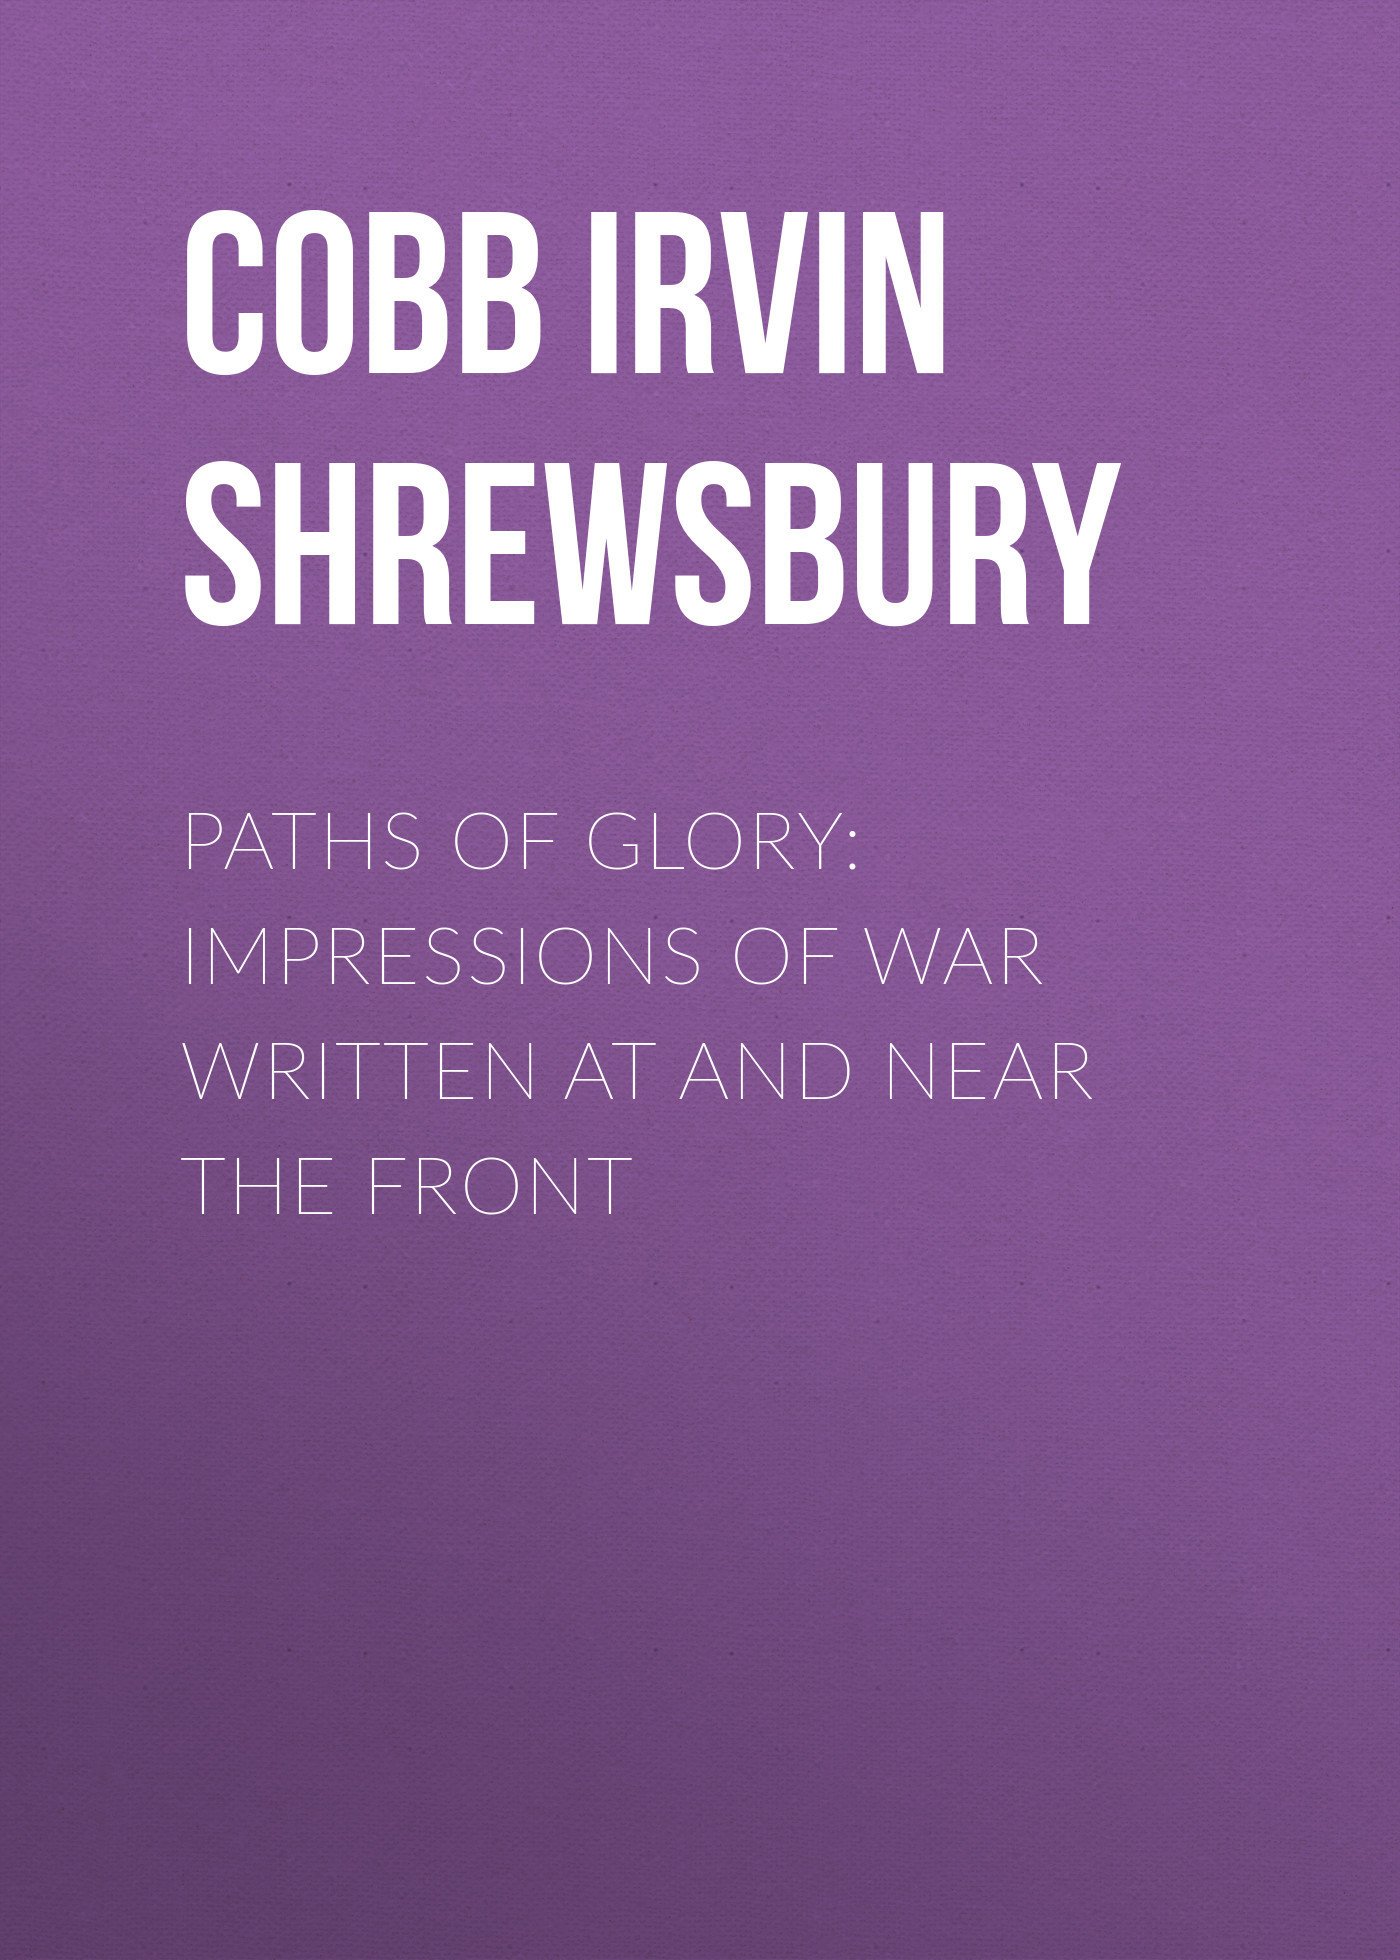 Cobb Irvin Shrewsbury Paths of Glory: Impressions of War Written at and Near the Front майка print bar винсент и джулс